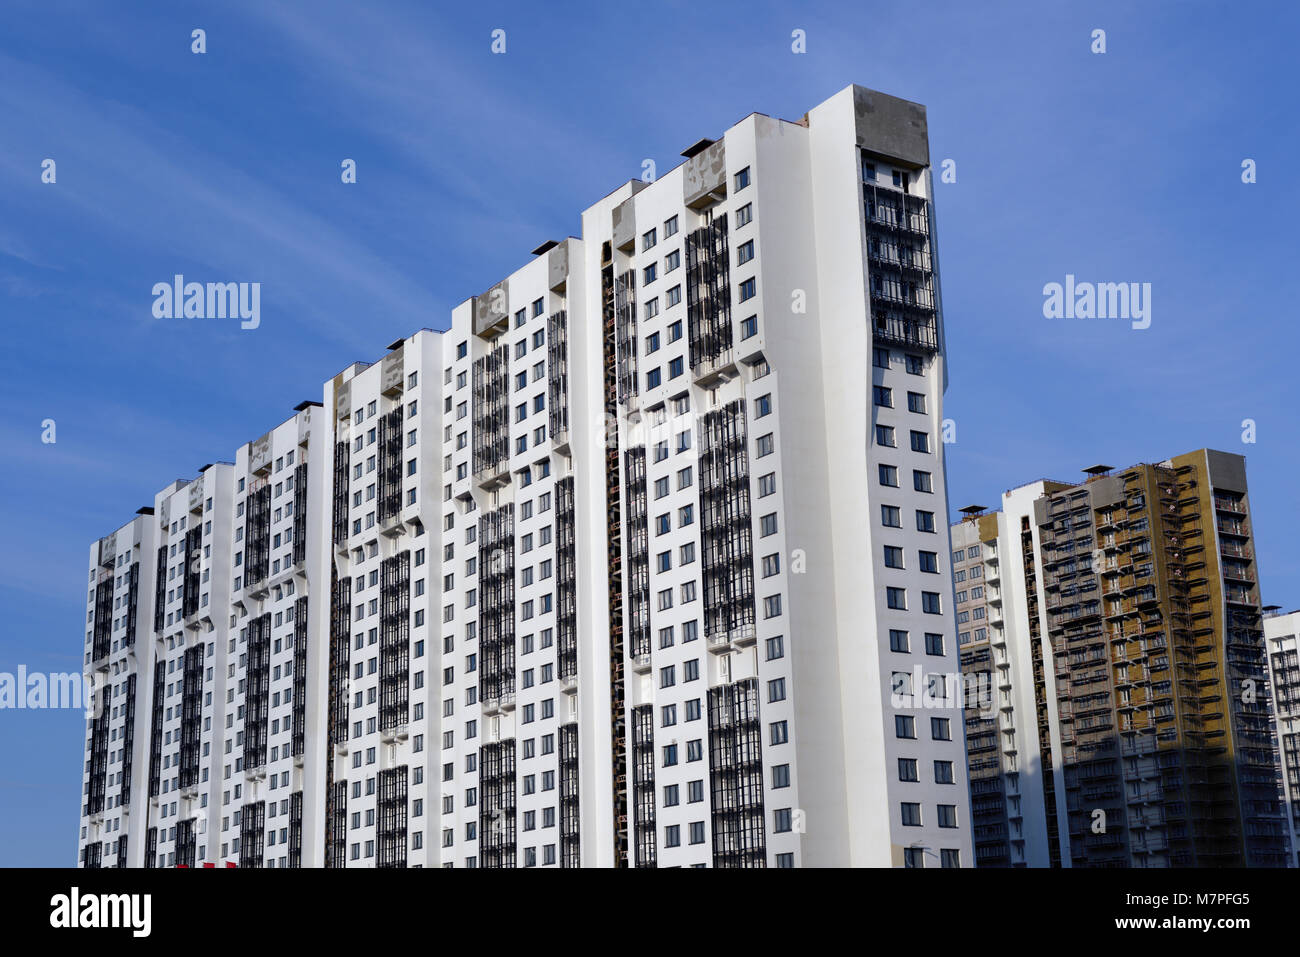 st petersburg russia apartment block stock photos st petersburg russia apartment block stock. Black Bedroom Furniture Sets. Home Design Ideas